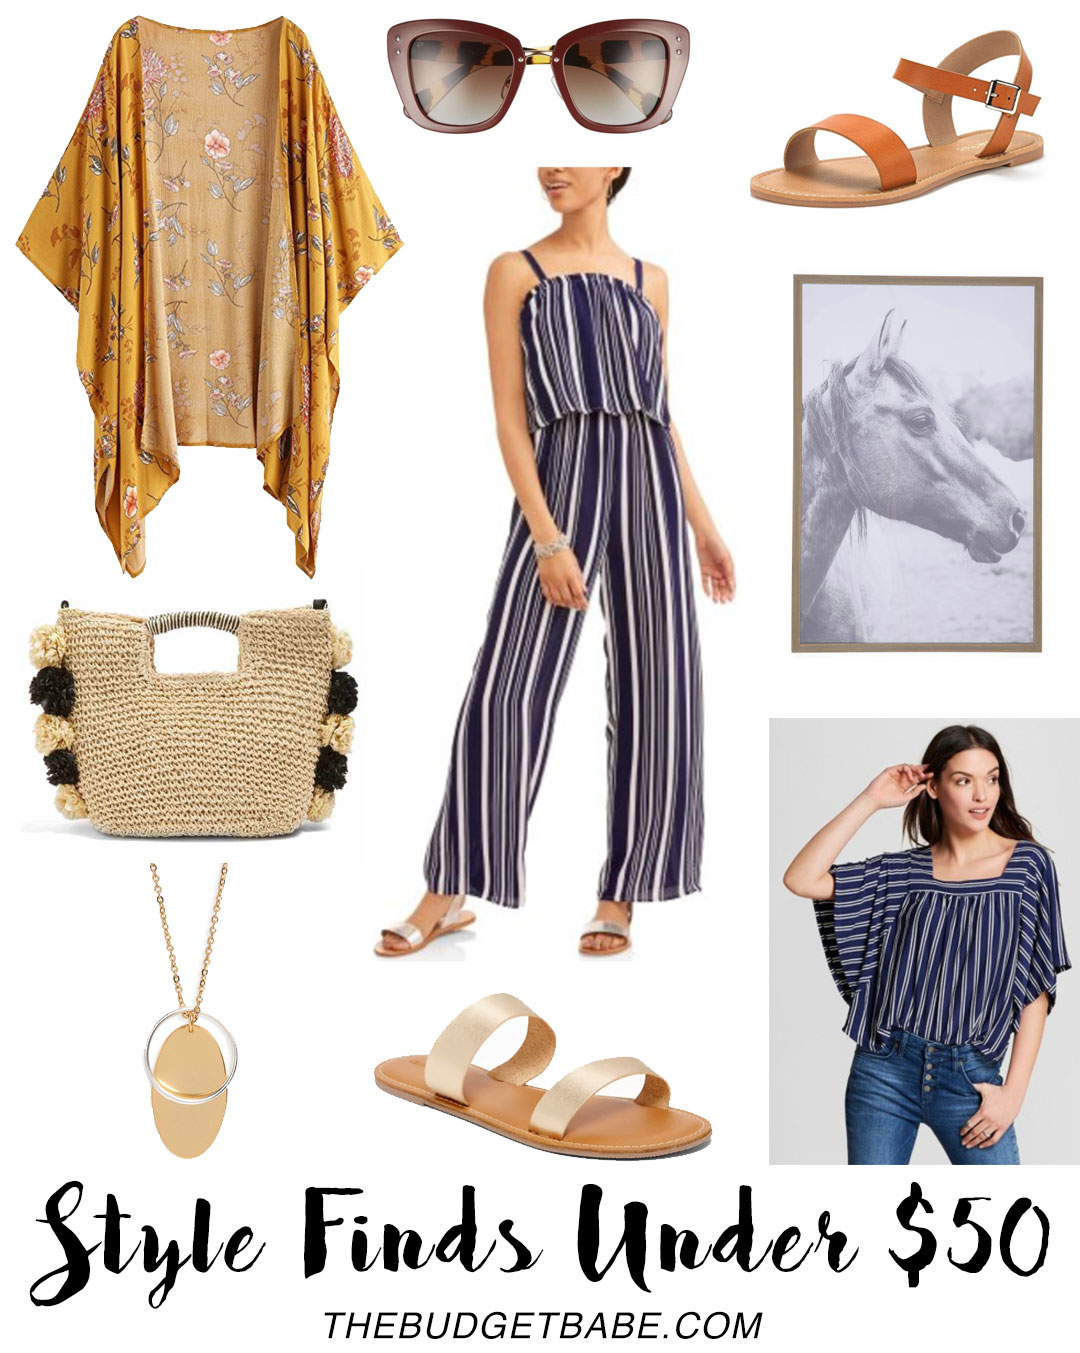 Style finds under $50